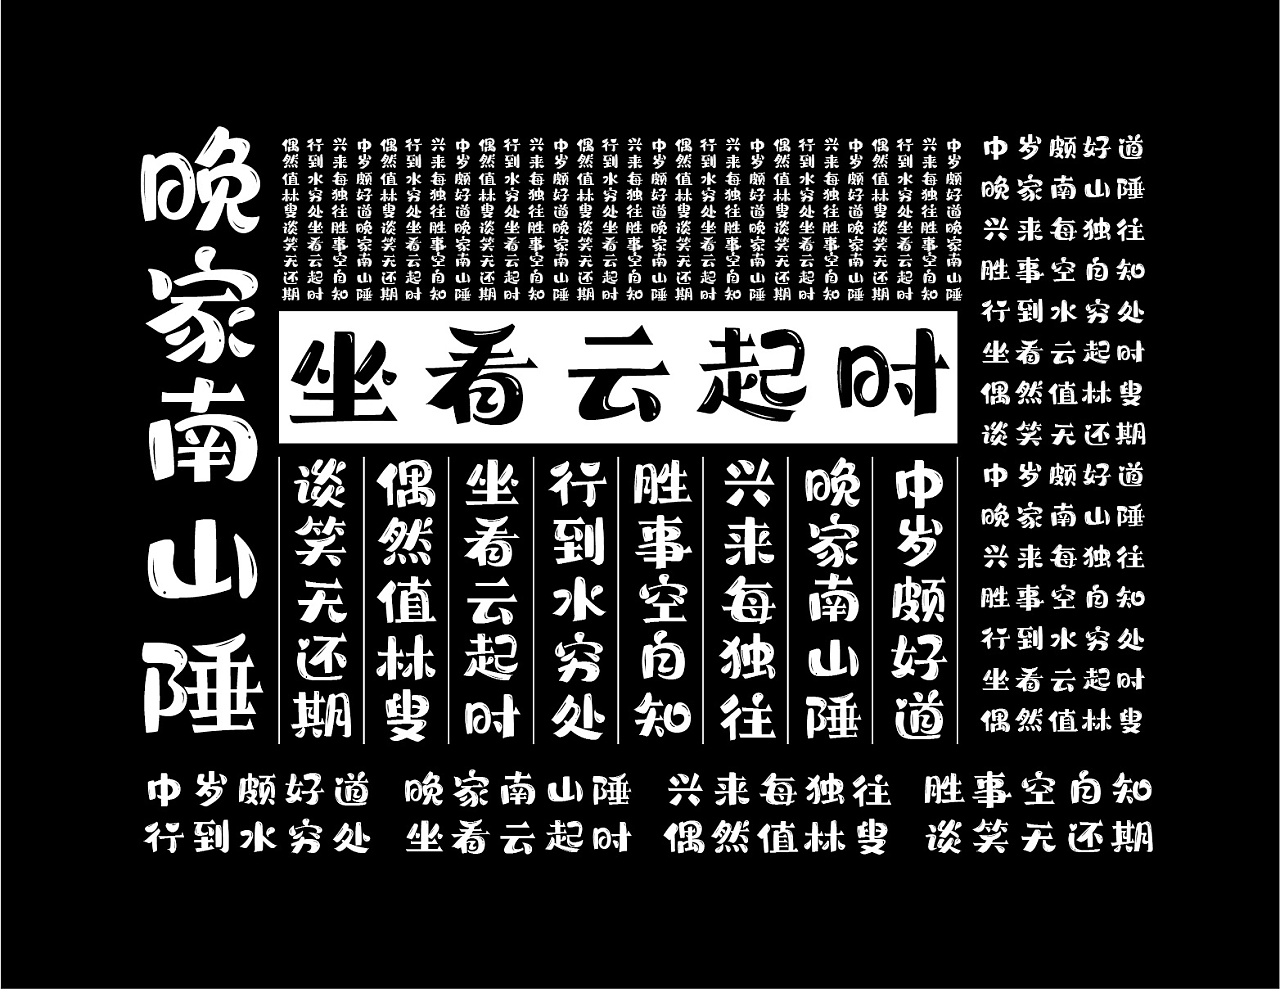 Chinese Creative Font Design-Funny Handwritten Song Style Online, Unlimited Full Media Commercial Edition